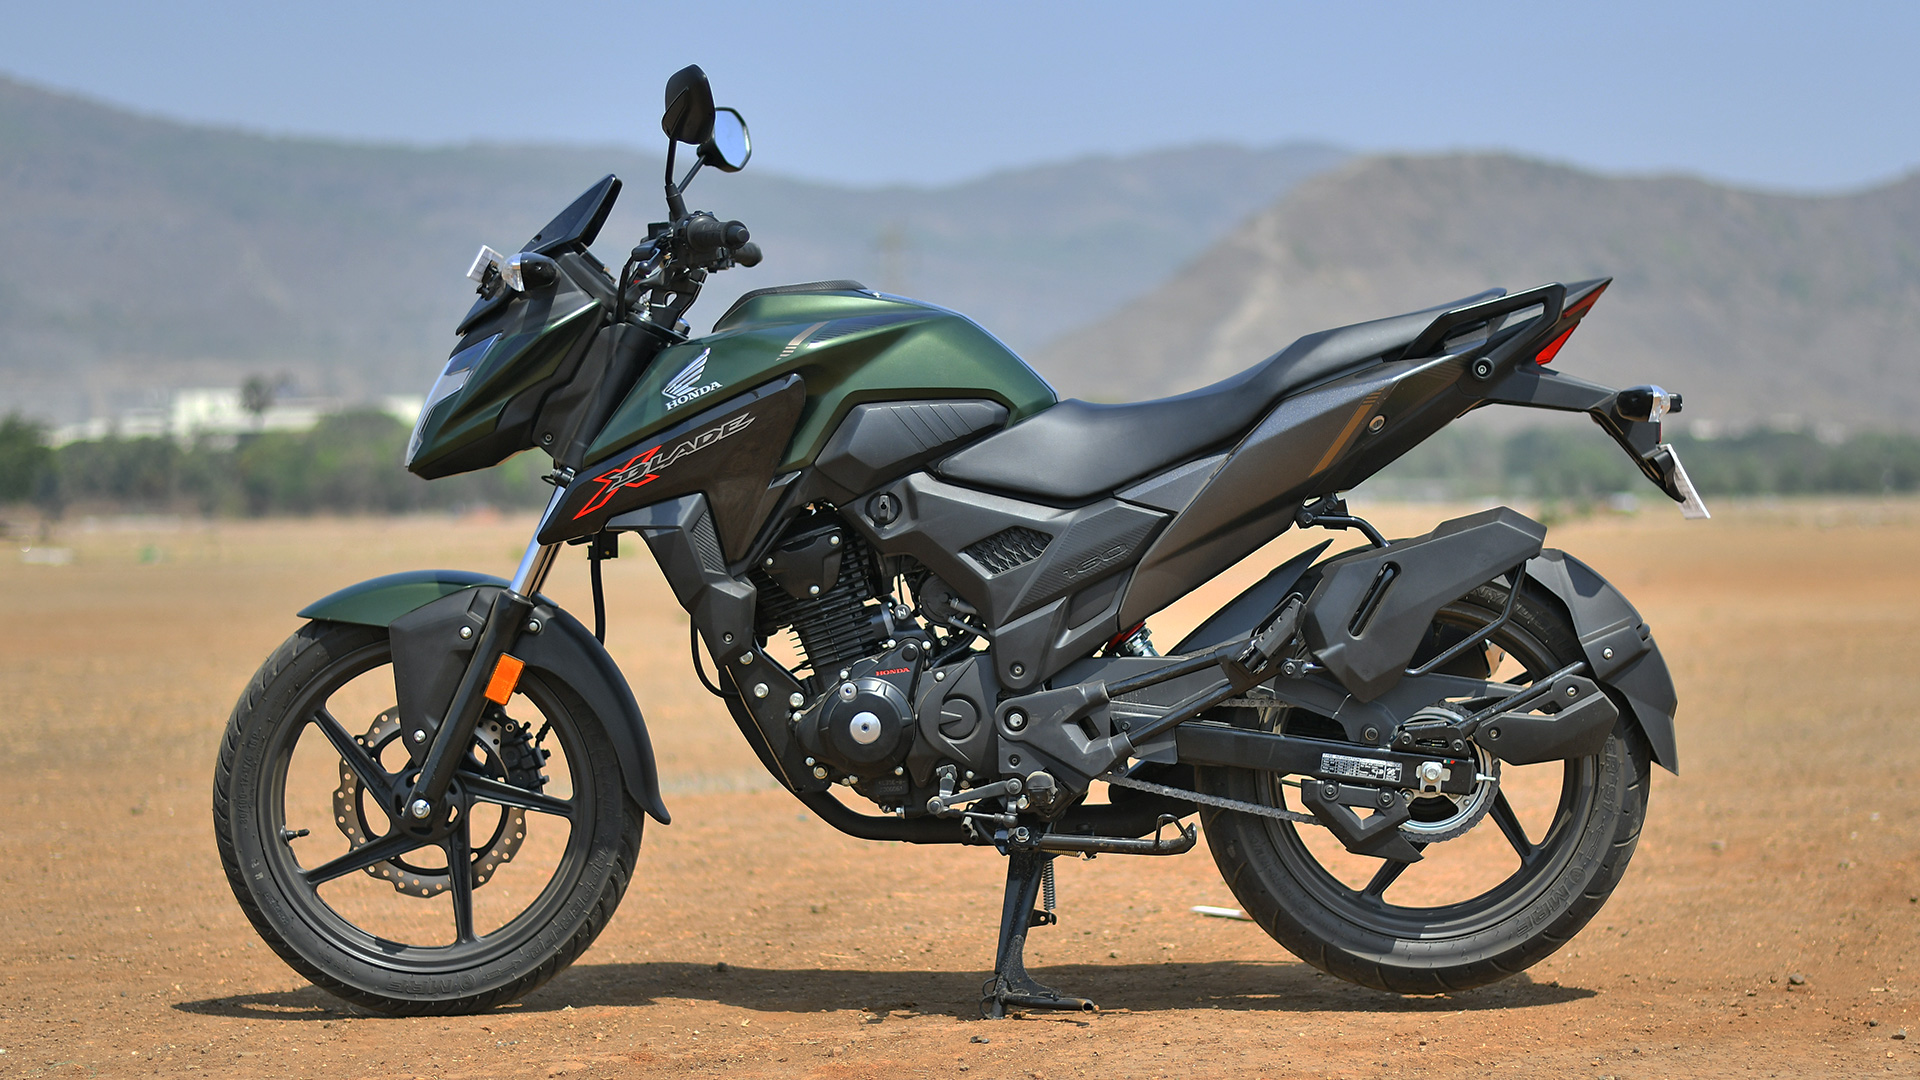 Honda X-Blade 2018 STD - Price, Mileage, Reviews ...